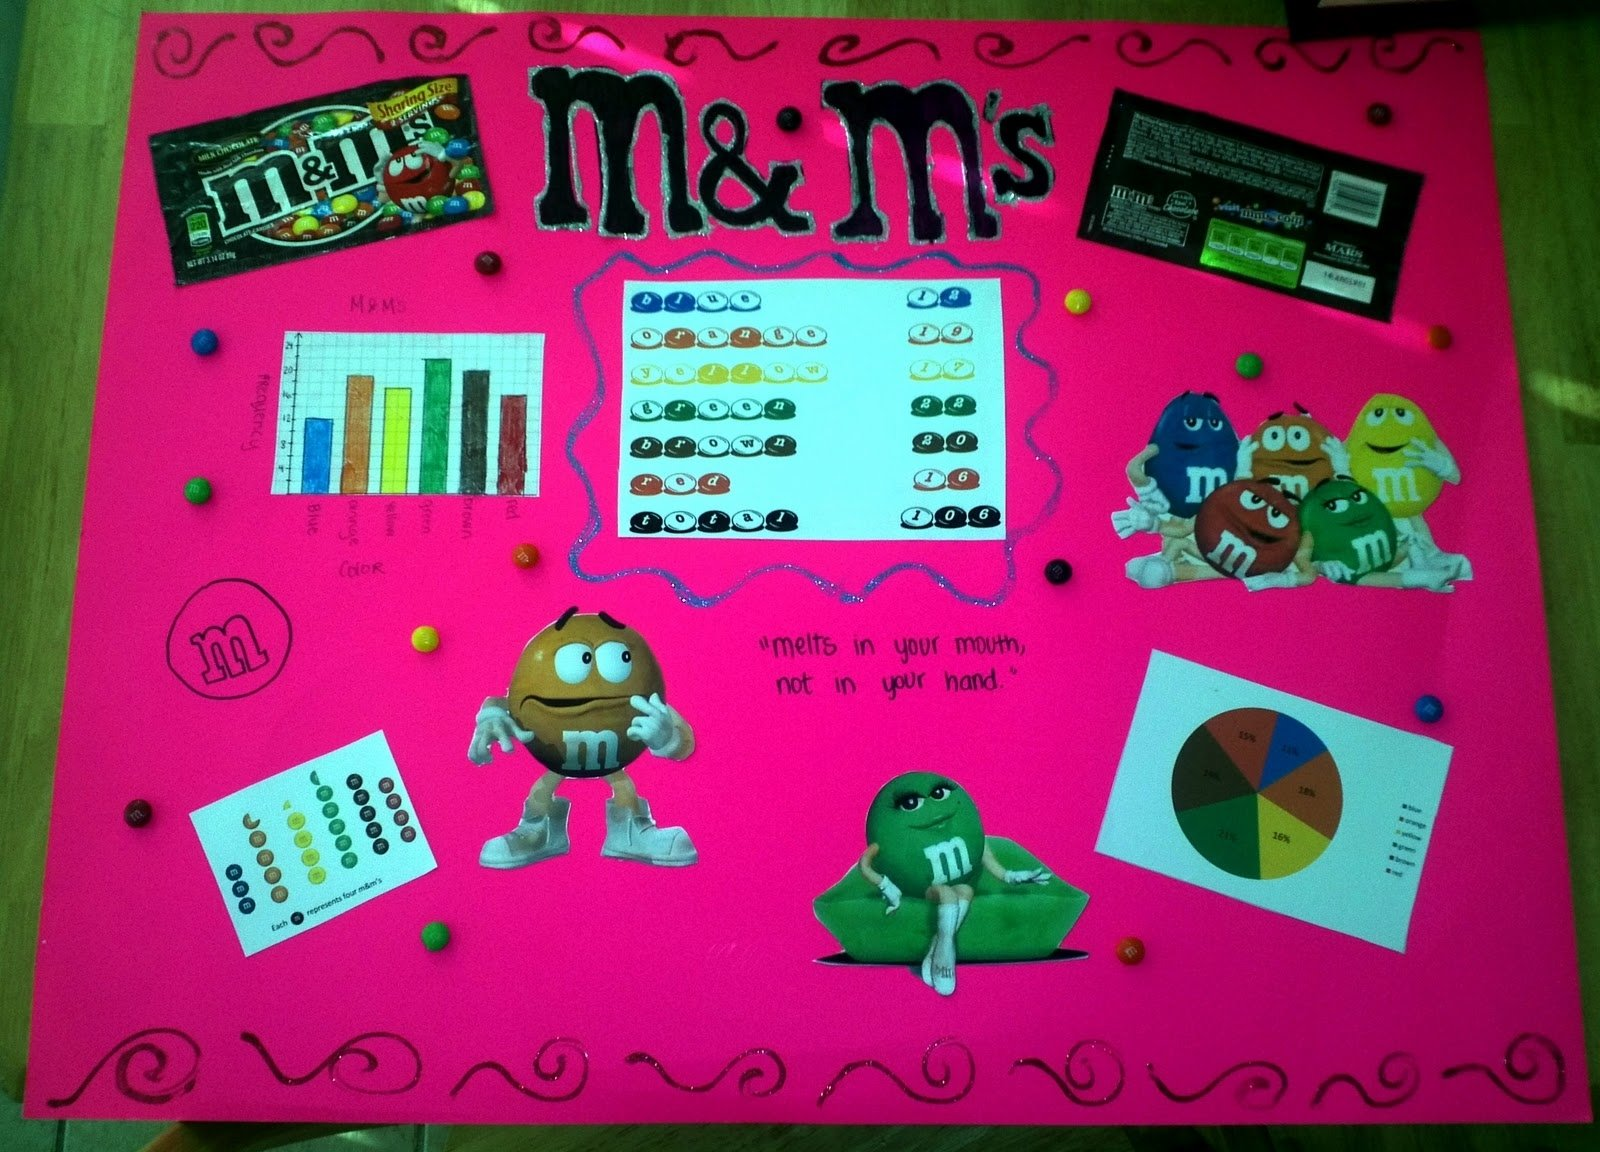 math-n-spire: m's and stats {project}-a compliment to my project